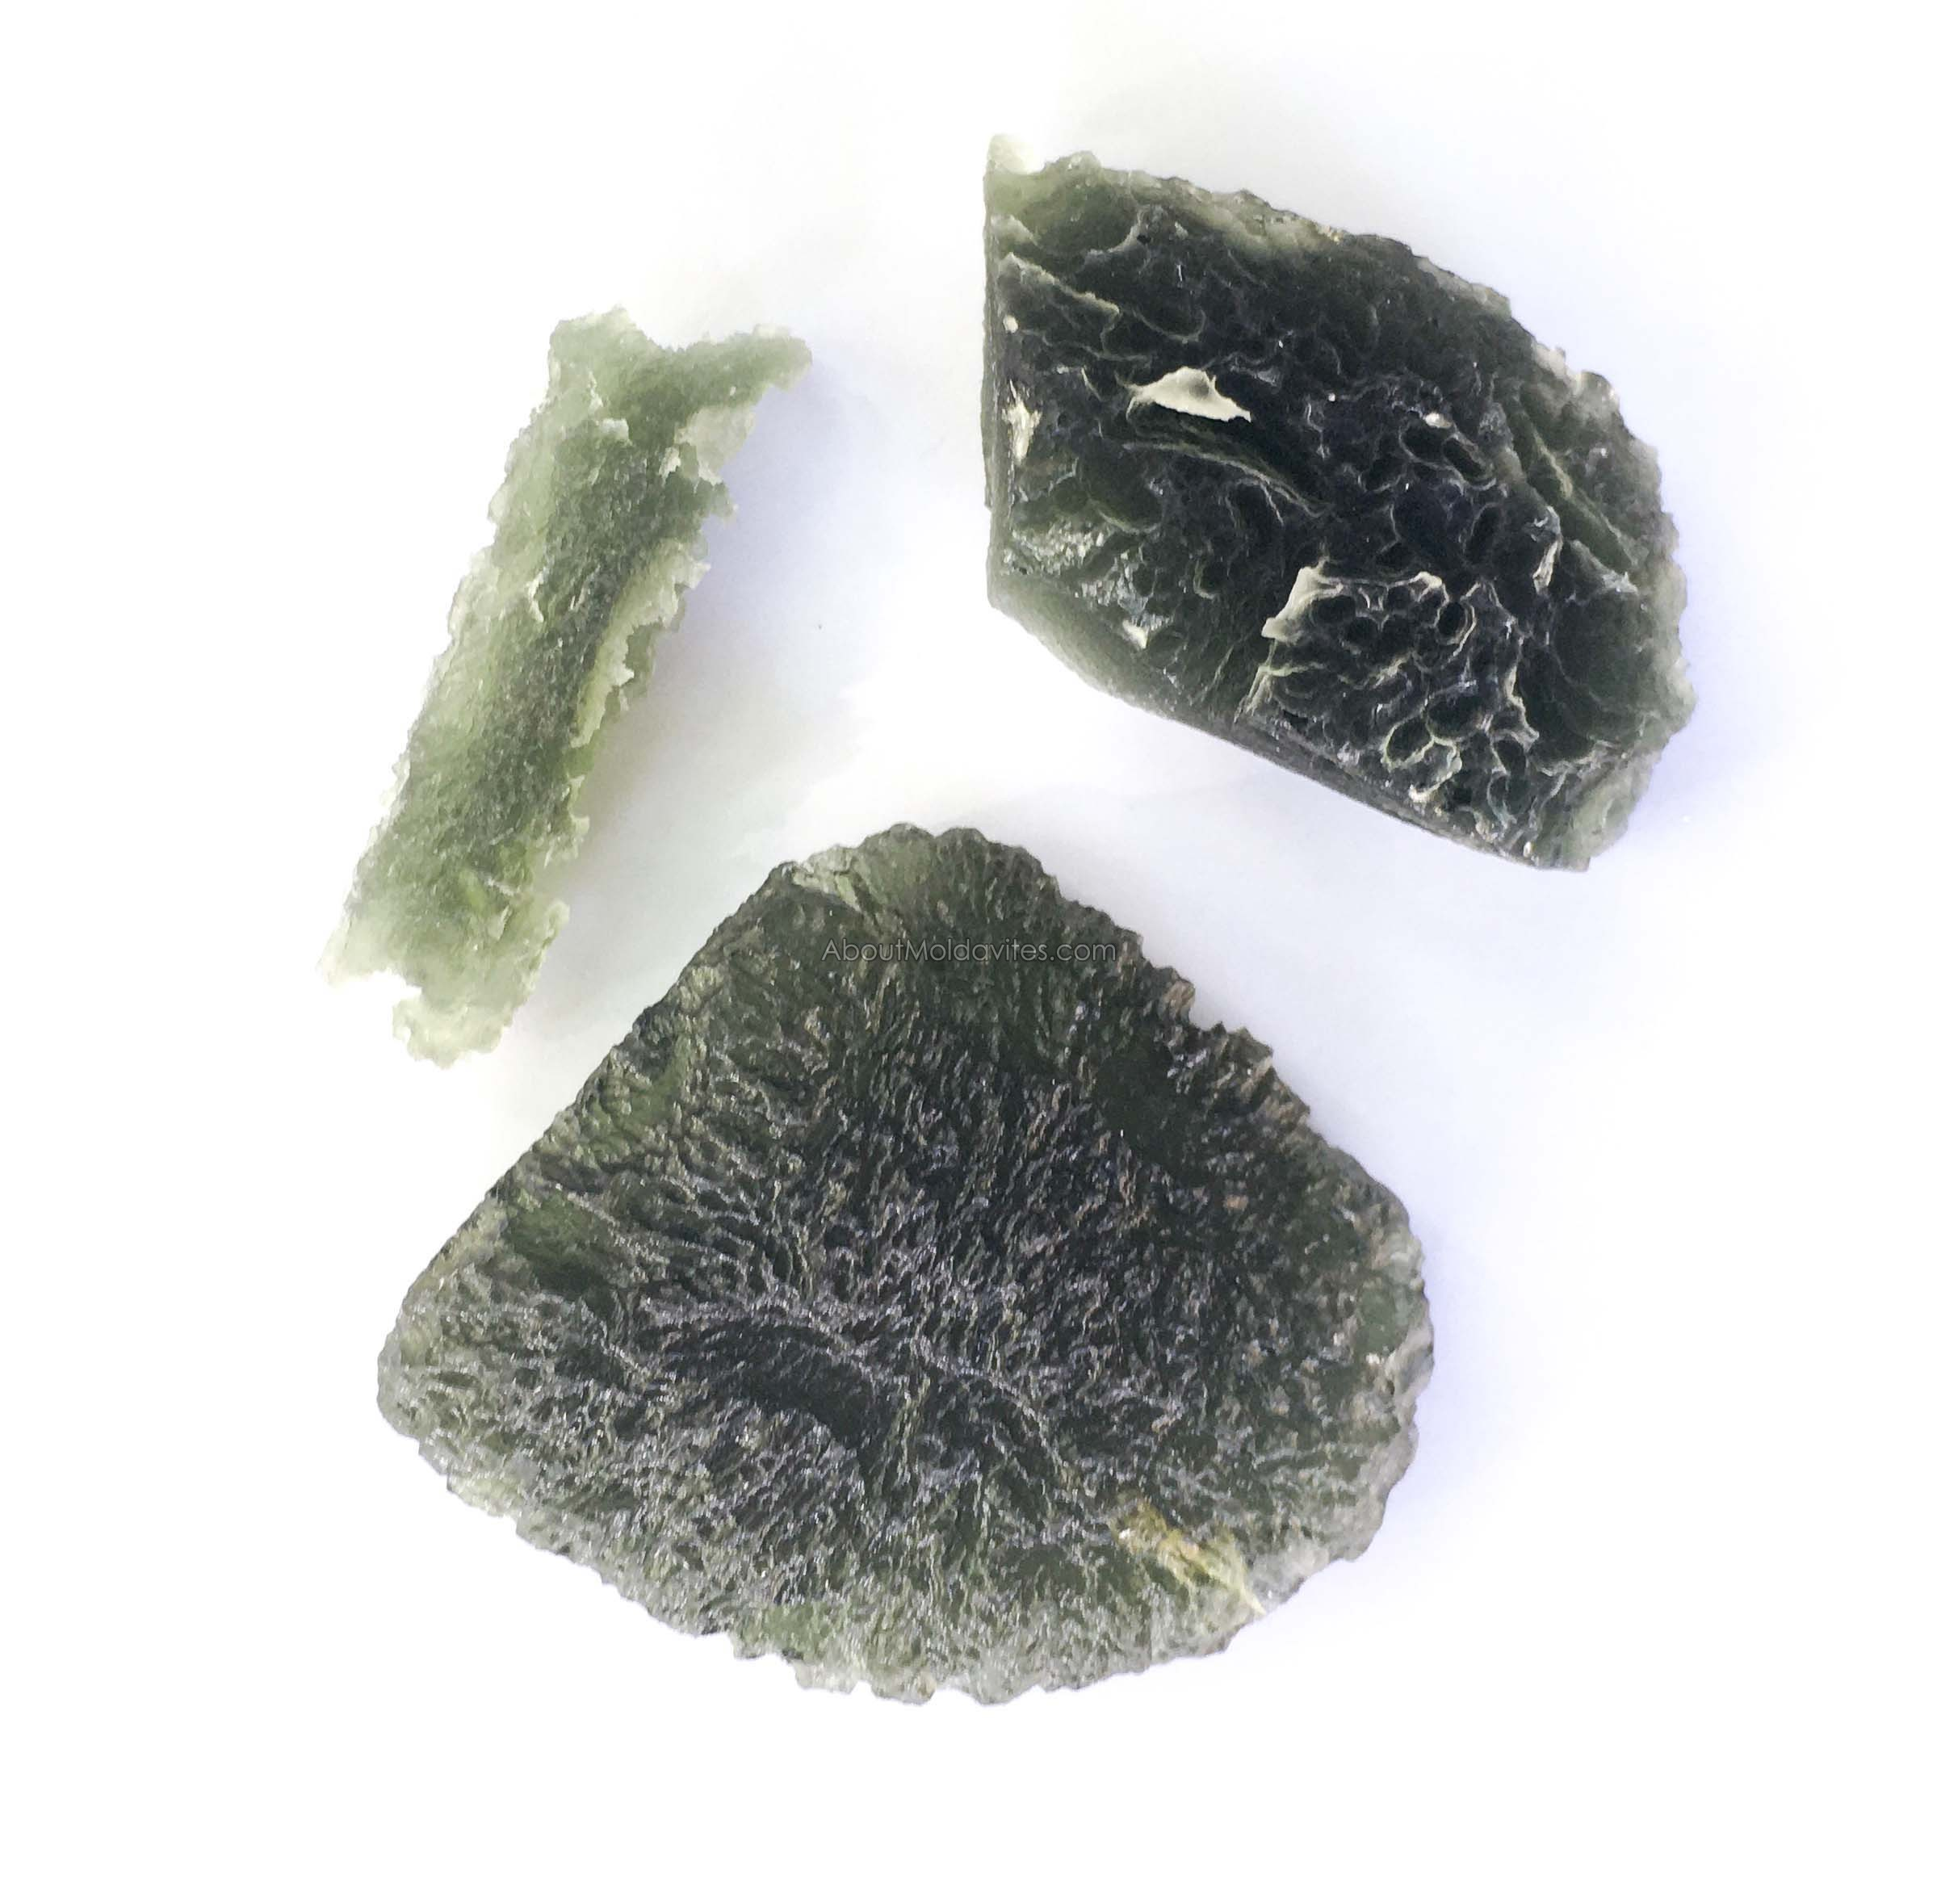 Compare of two Snow flake / frosty moldavites and a normal one